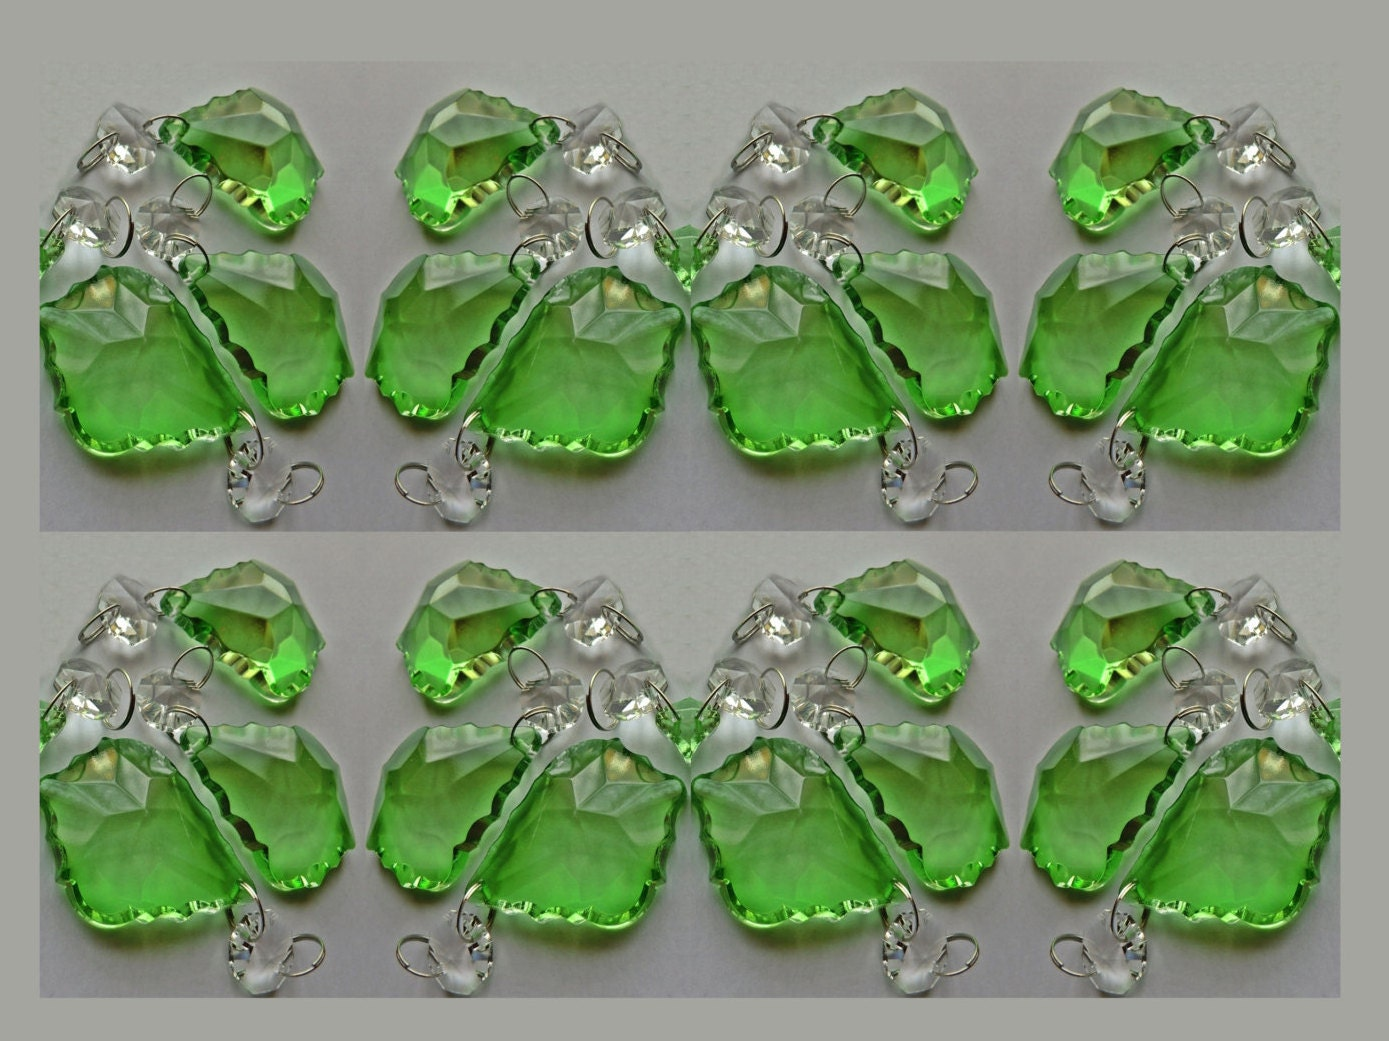 24 emerald green chandelier drops glass crystals droplets chic 24 emerald green chandelier drops glass crystals droplets chic leaf beads pisms vintage christmas tree wedding decoration crafts light parts mozeypictures Image collections